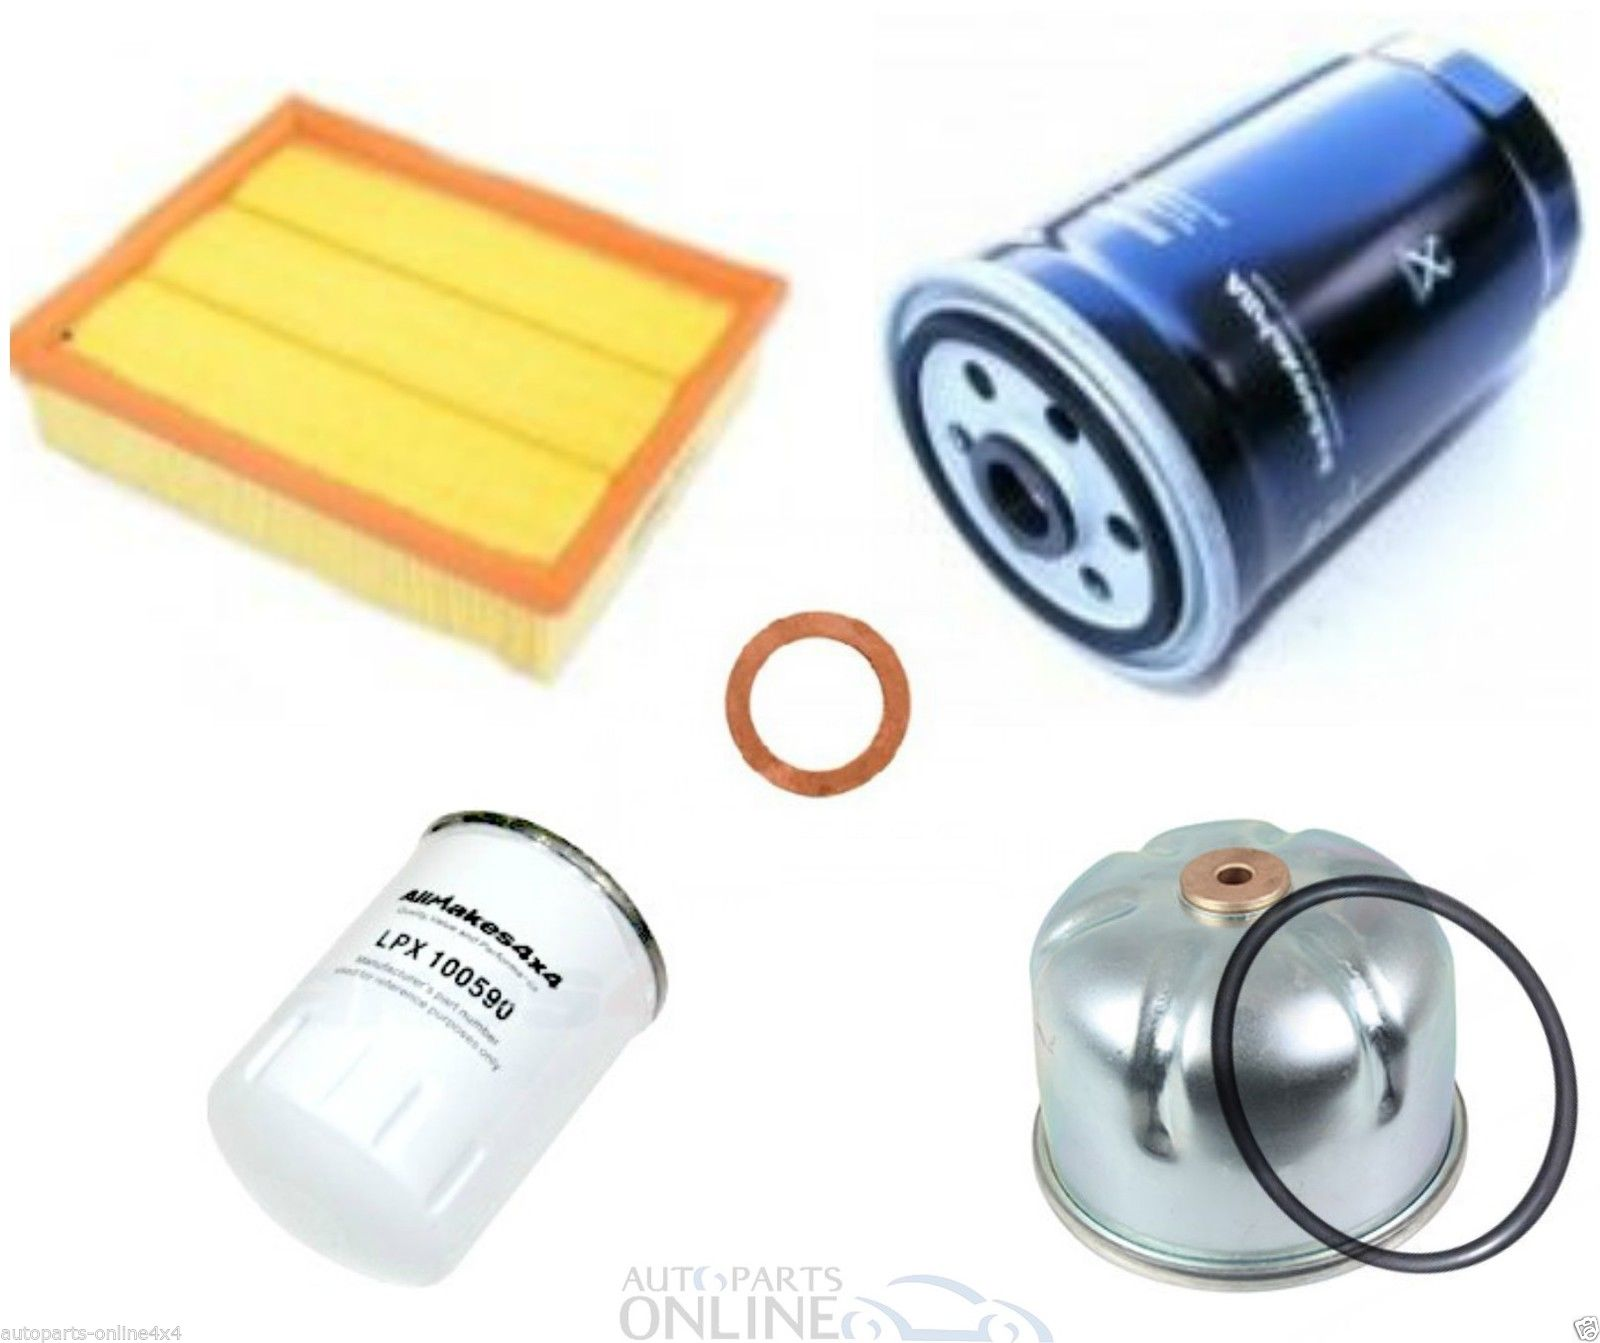 LAND ROVER DISCOVERY 2 TD5 FULL SERVICE KIT, OIL, AIR & FUEL FILTERS BK0014